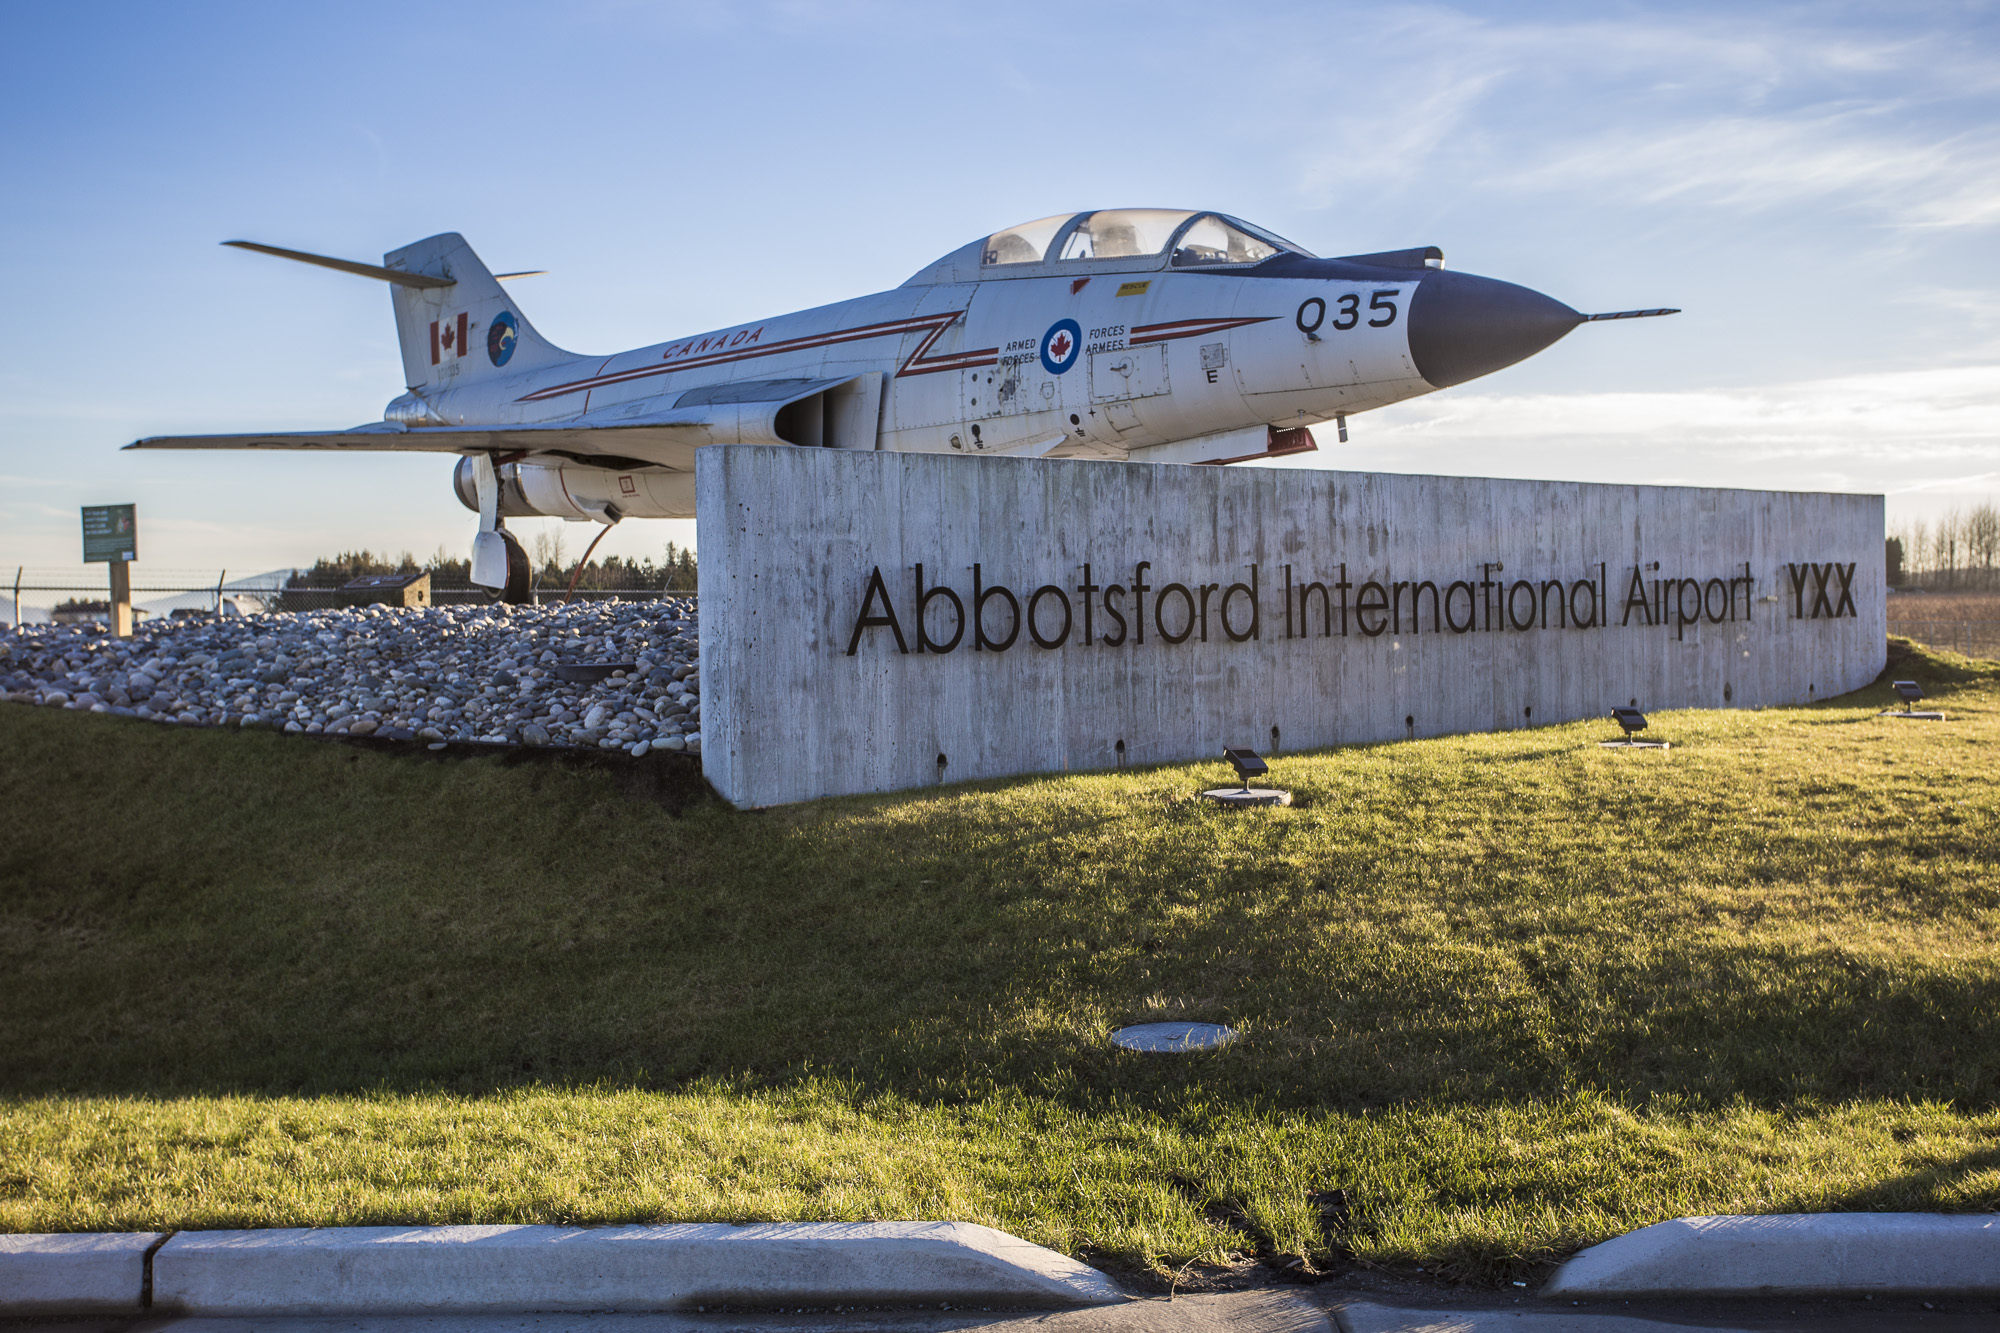 Another record-setting year at Abbotsford International Airport